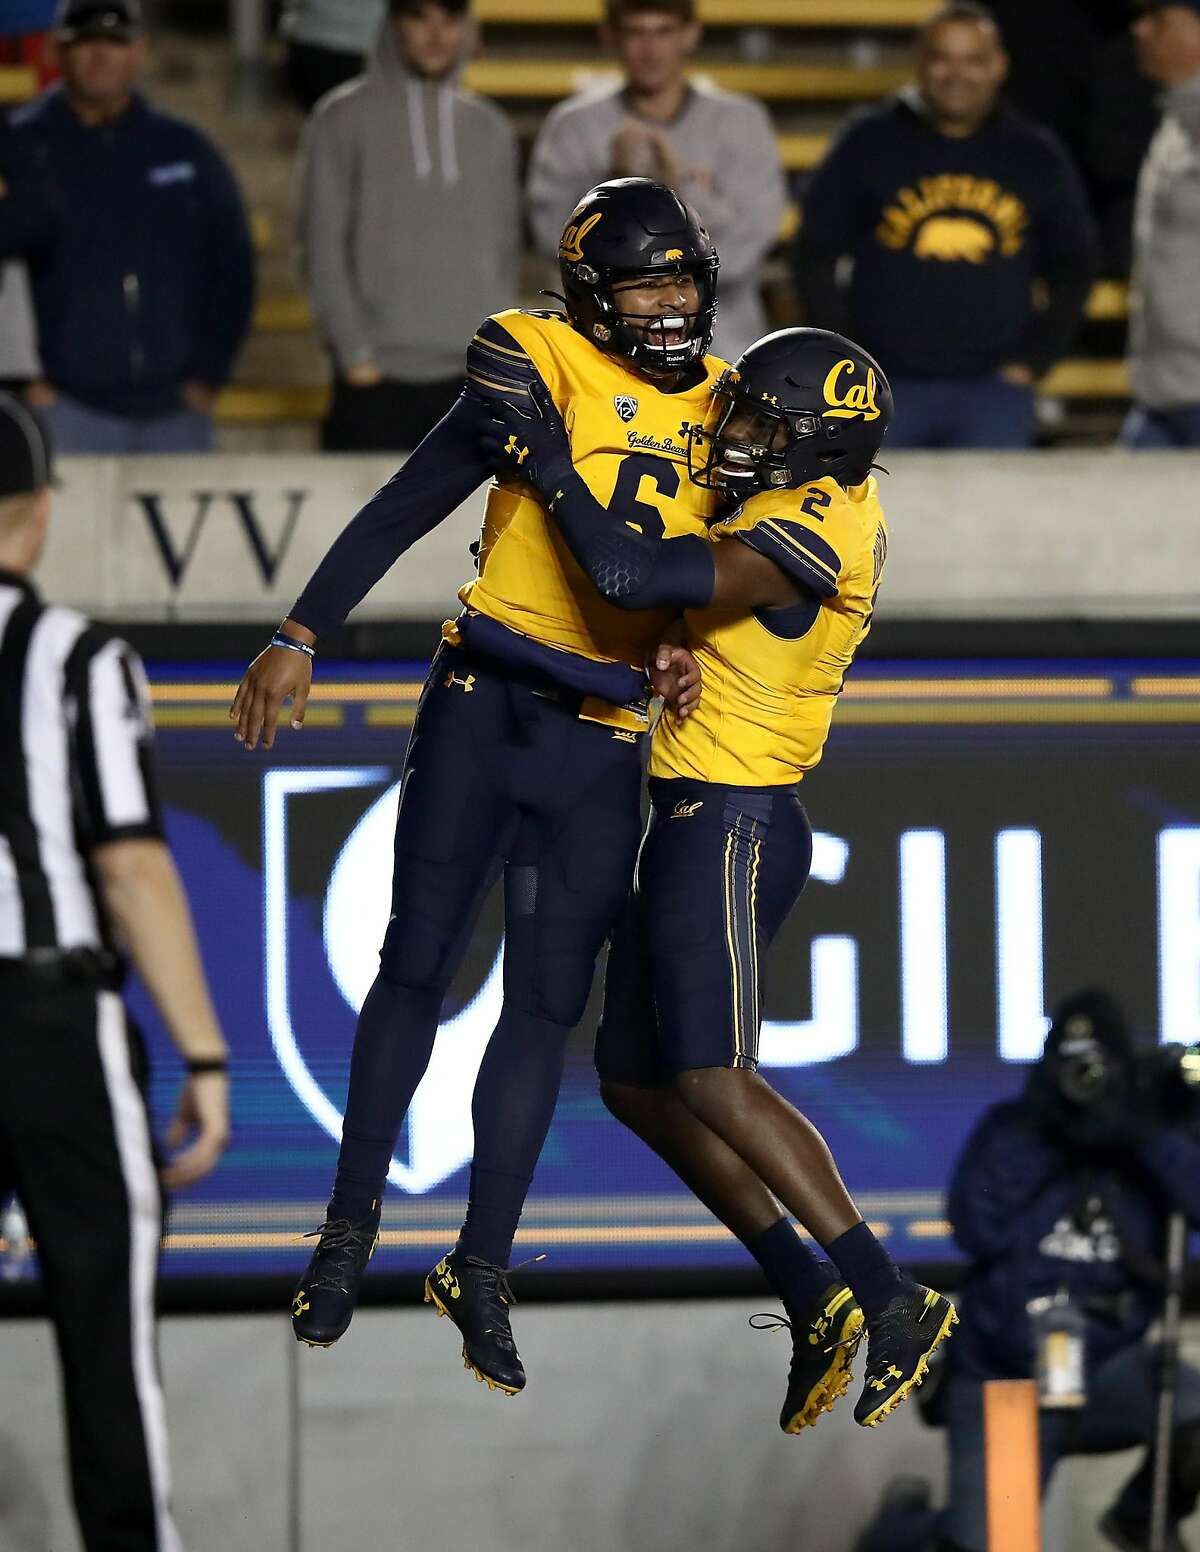 BERKELEY, CALIFORNIA - NOVEMBER 09: Devon Modster #6 of the California Golden Bears is congratulated by Jordan Duncan #2 after Modster ran in for a touchdown against the Washington State Cougars at California Memorial Stadium on November 09, 2019 in Berkeley, California. (Photo by Ezra Shaw/Getty Images)